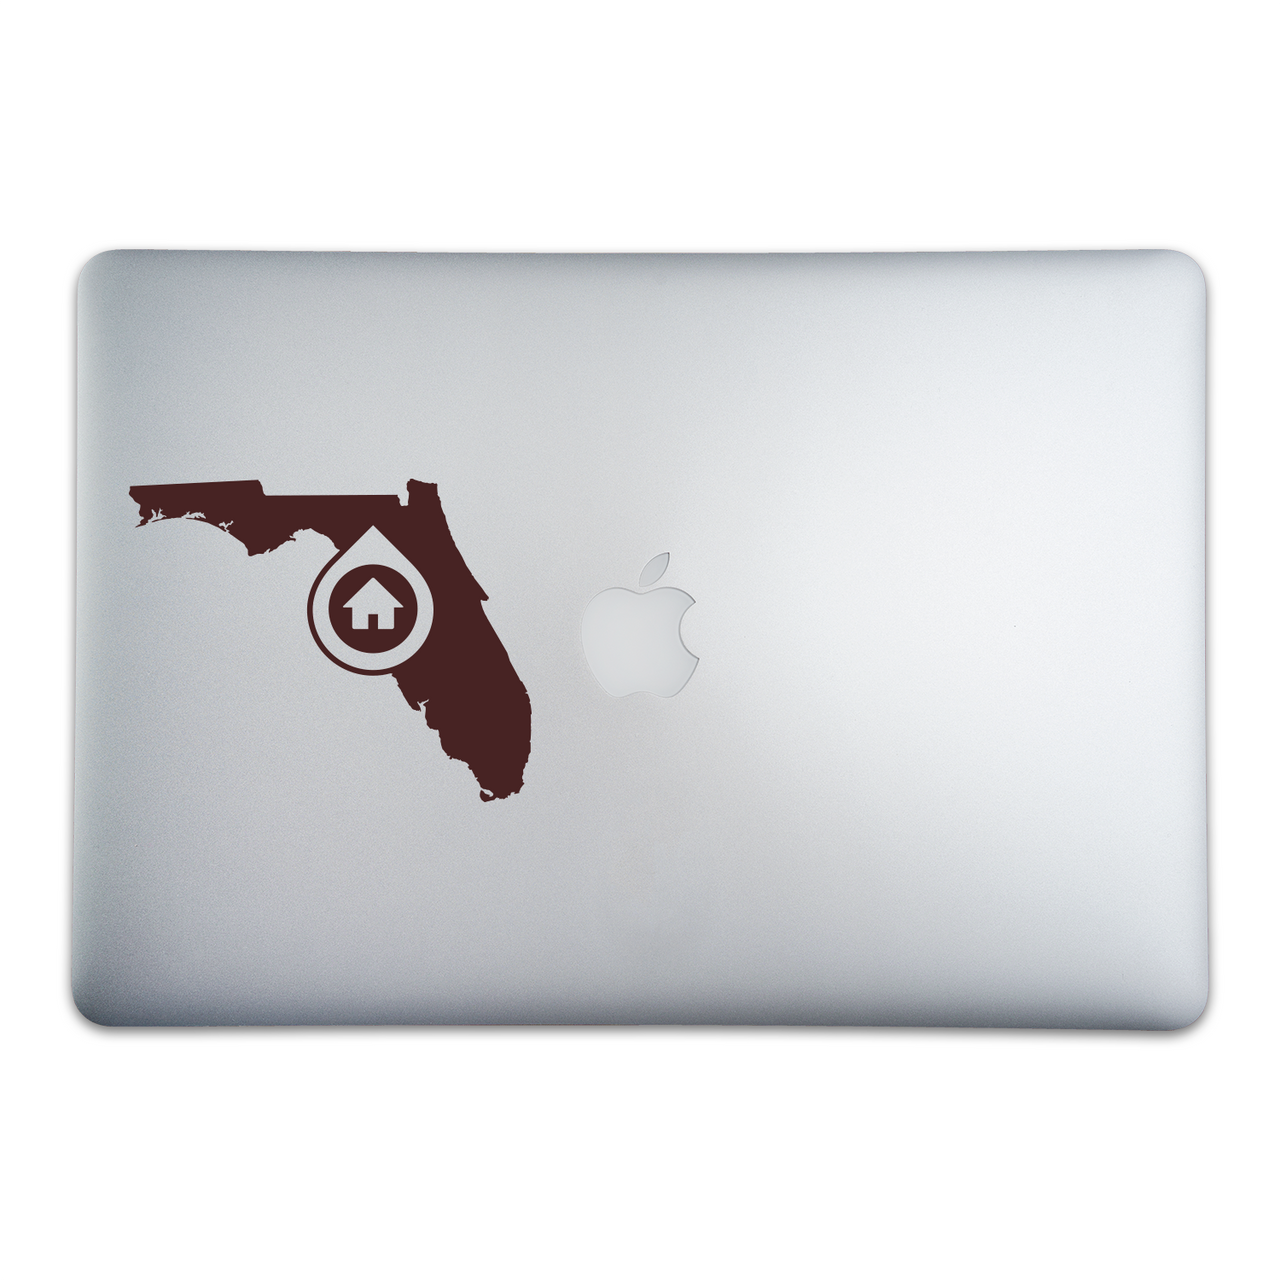 Tallahassee, Florida Home sticker on a 15-inch MacBook Pro